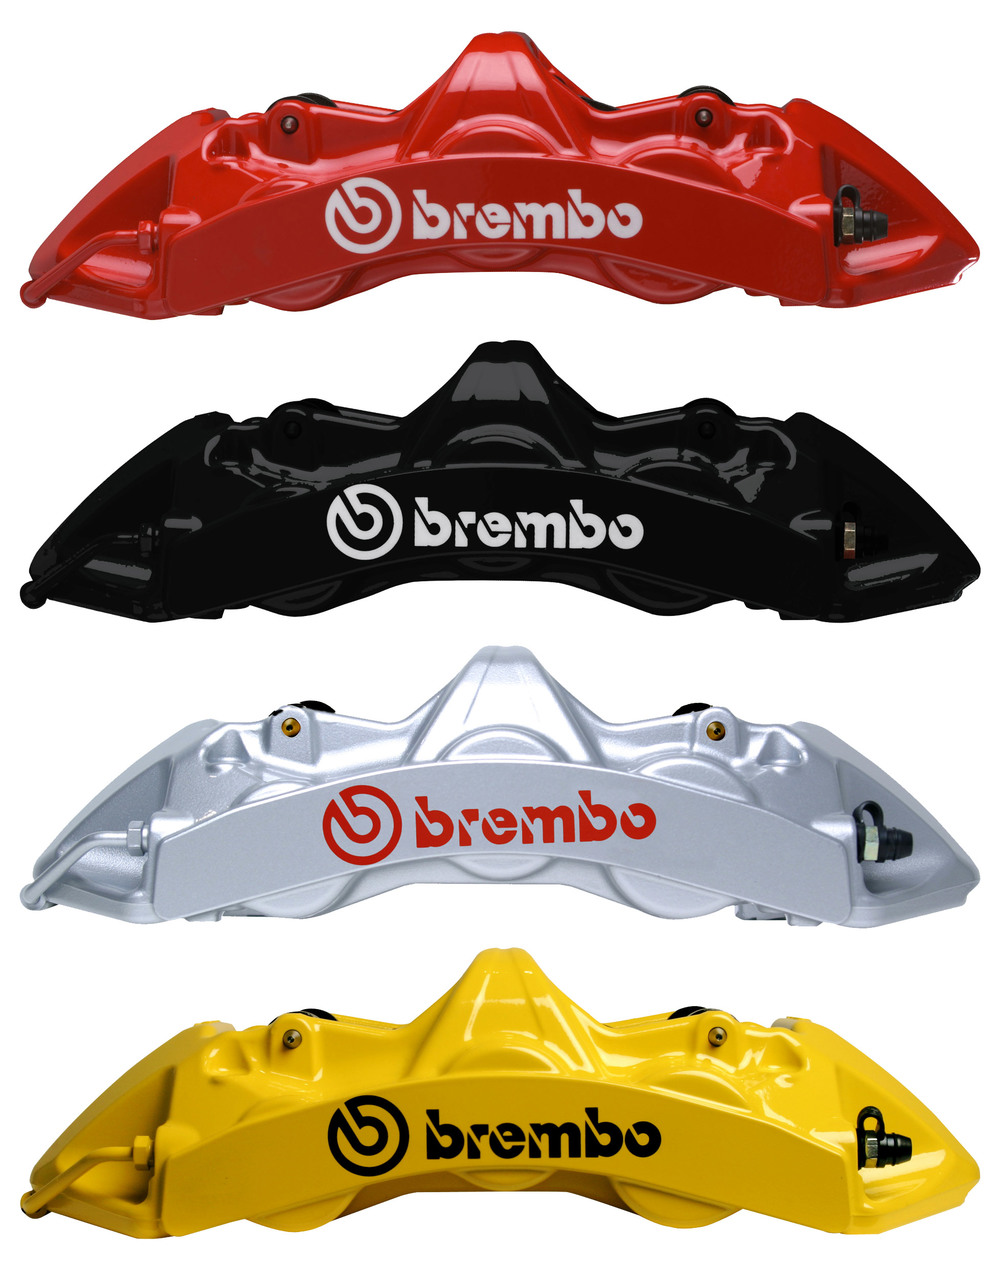 Brembo GT Brake Systems